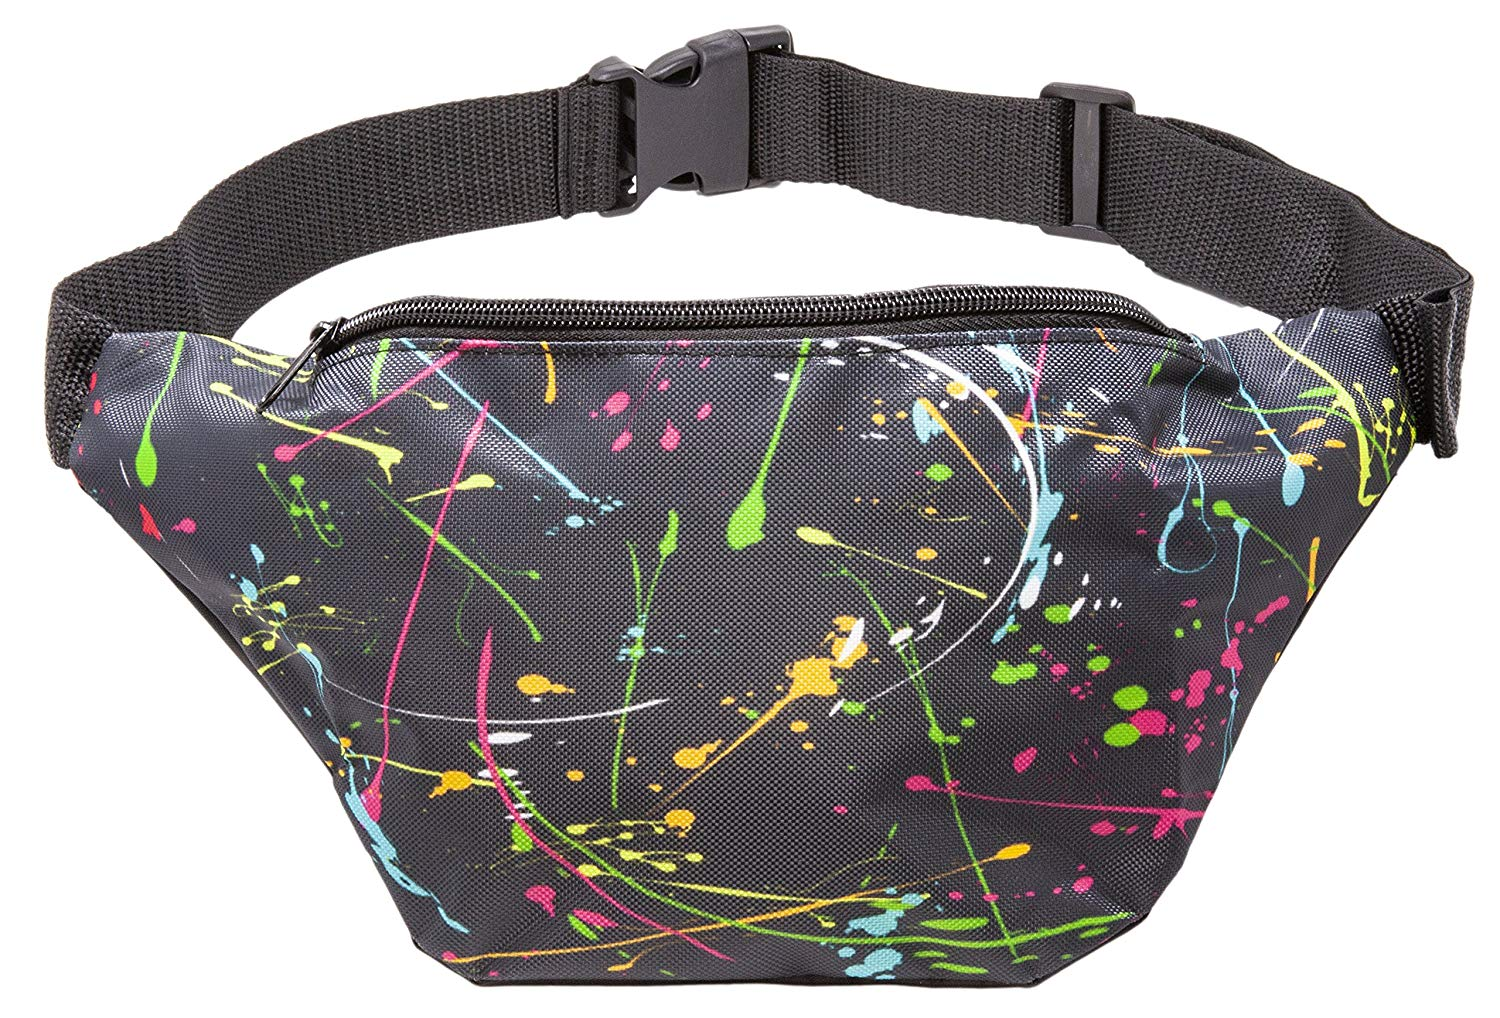 c21f7ed24d89 Cheap Retro Fanny Packs, find Retro Fanny Packs deals on line at ...